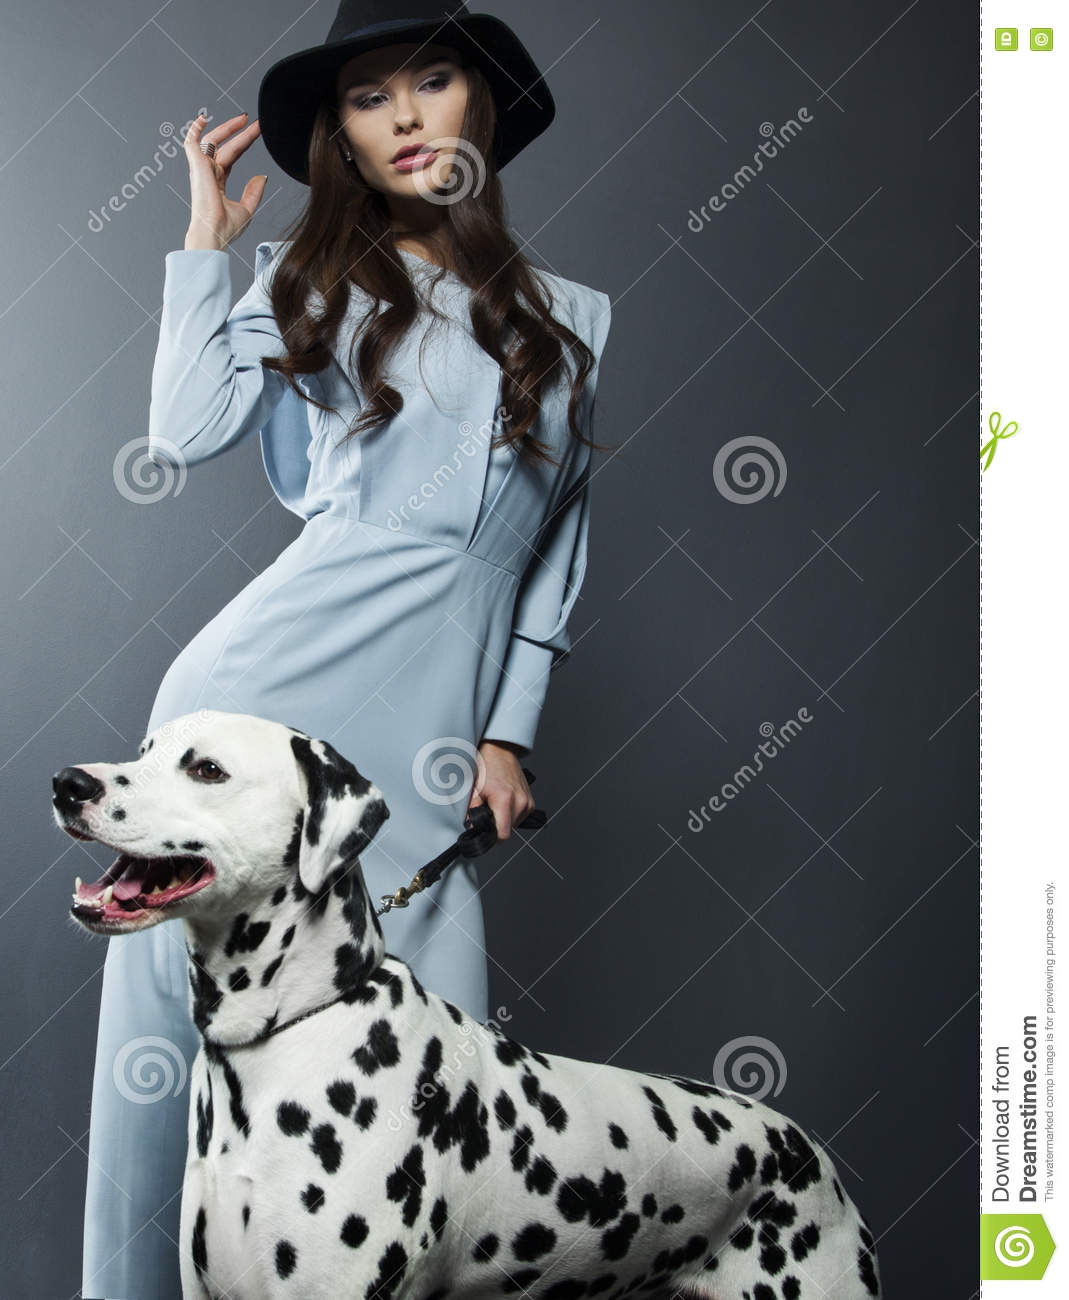 Beautiful Model In A Hat With Beautiful Makeup And A Dalmatian Dog Stock Photo Image Of Care Elegant 70319538